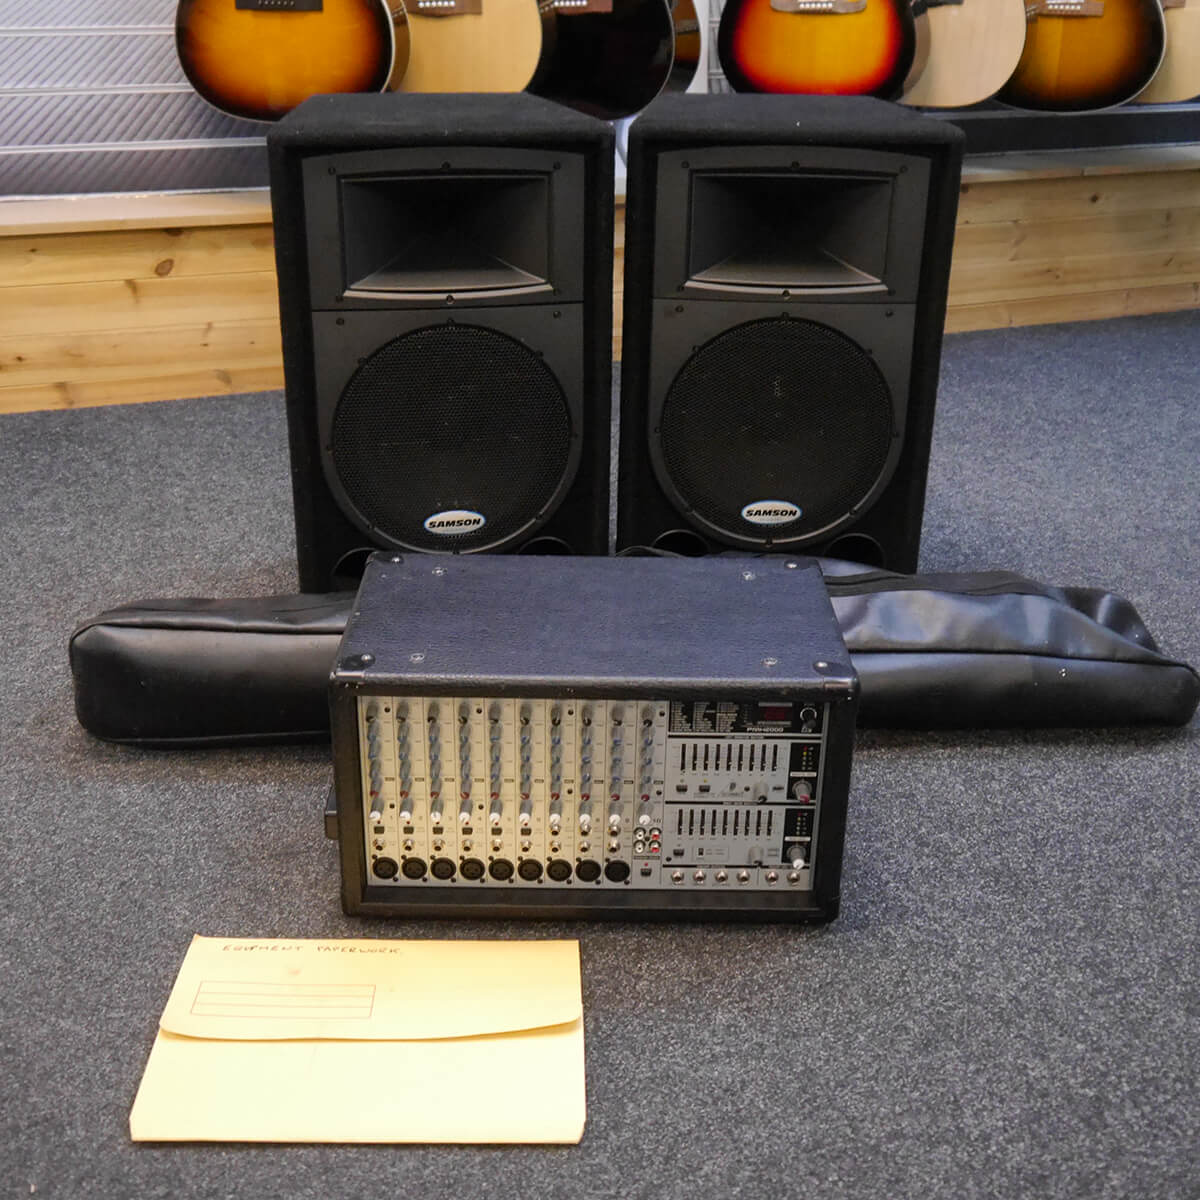 Behringer PMH2000 w/2 x Samson Speakers & Stands - 2nd Hand **COLLECTION ONLY**